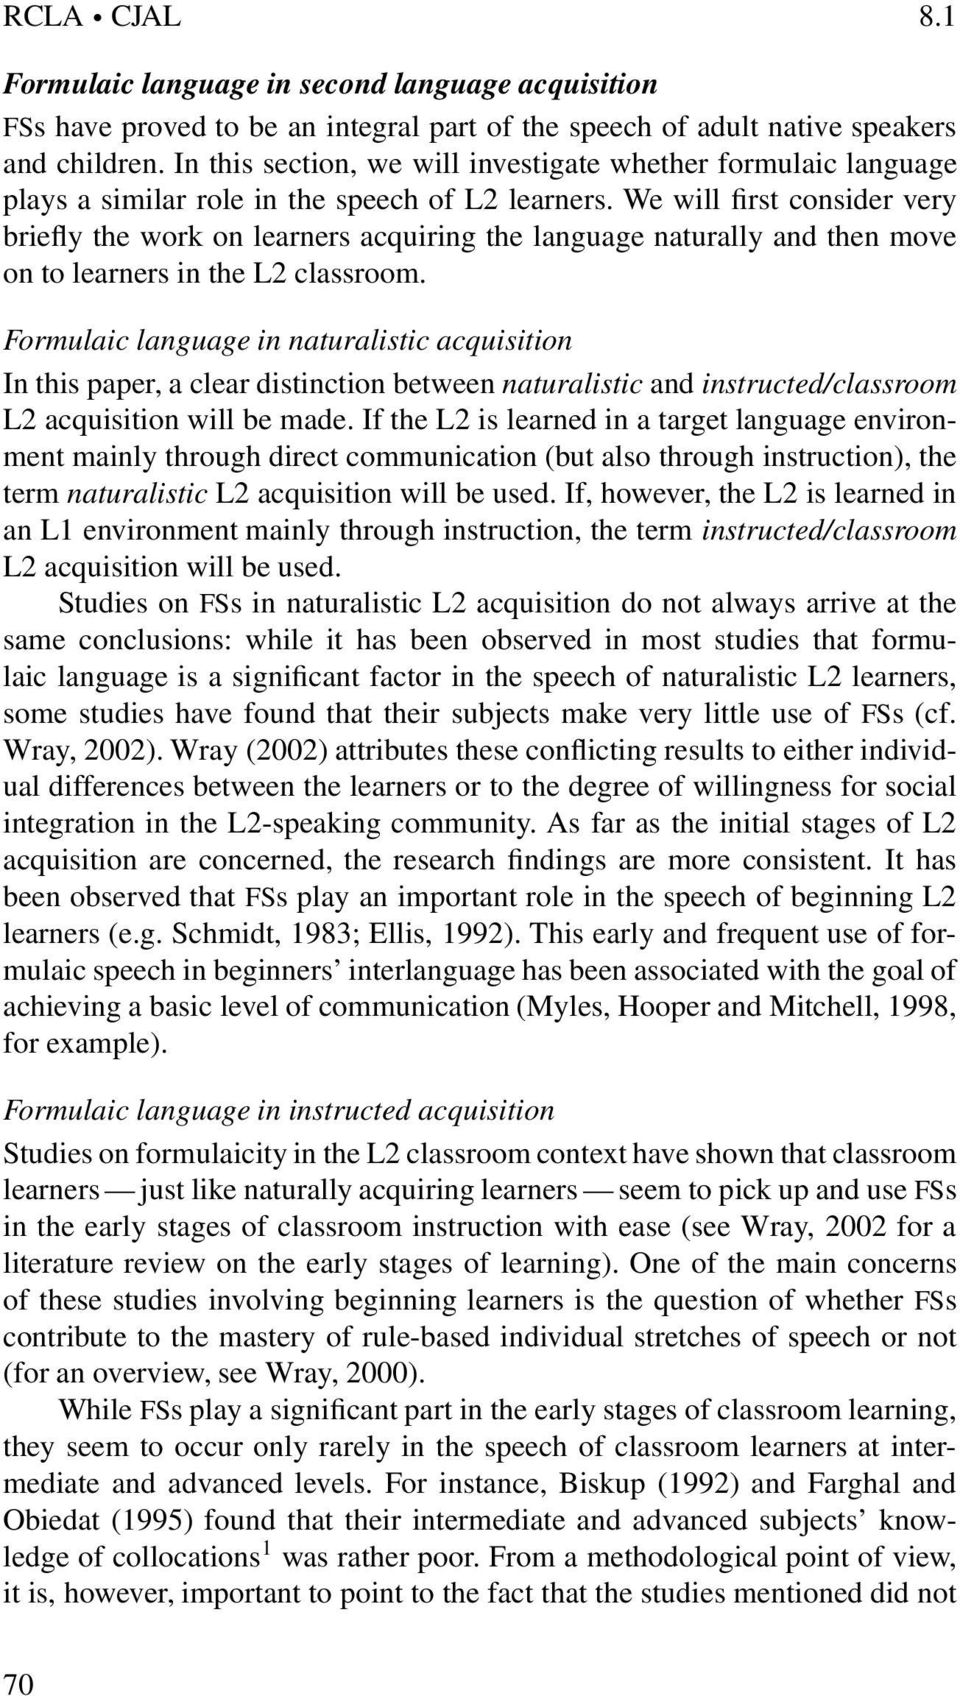 We will first consider very briefly the work on learners acquiring the language naturally and then move on to learners in the L2 classroom.